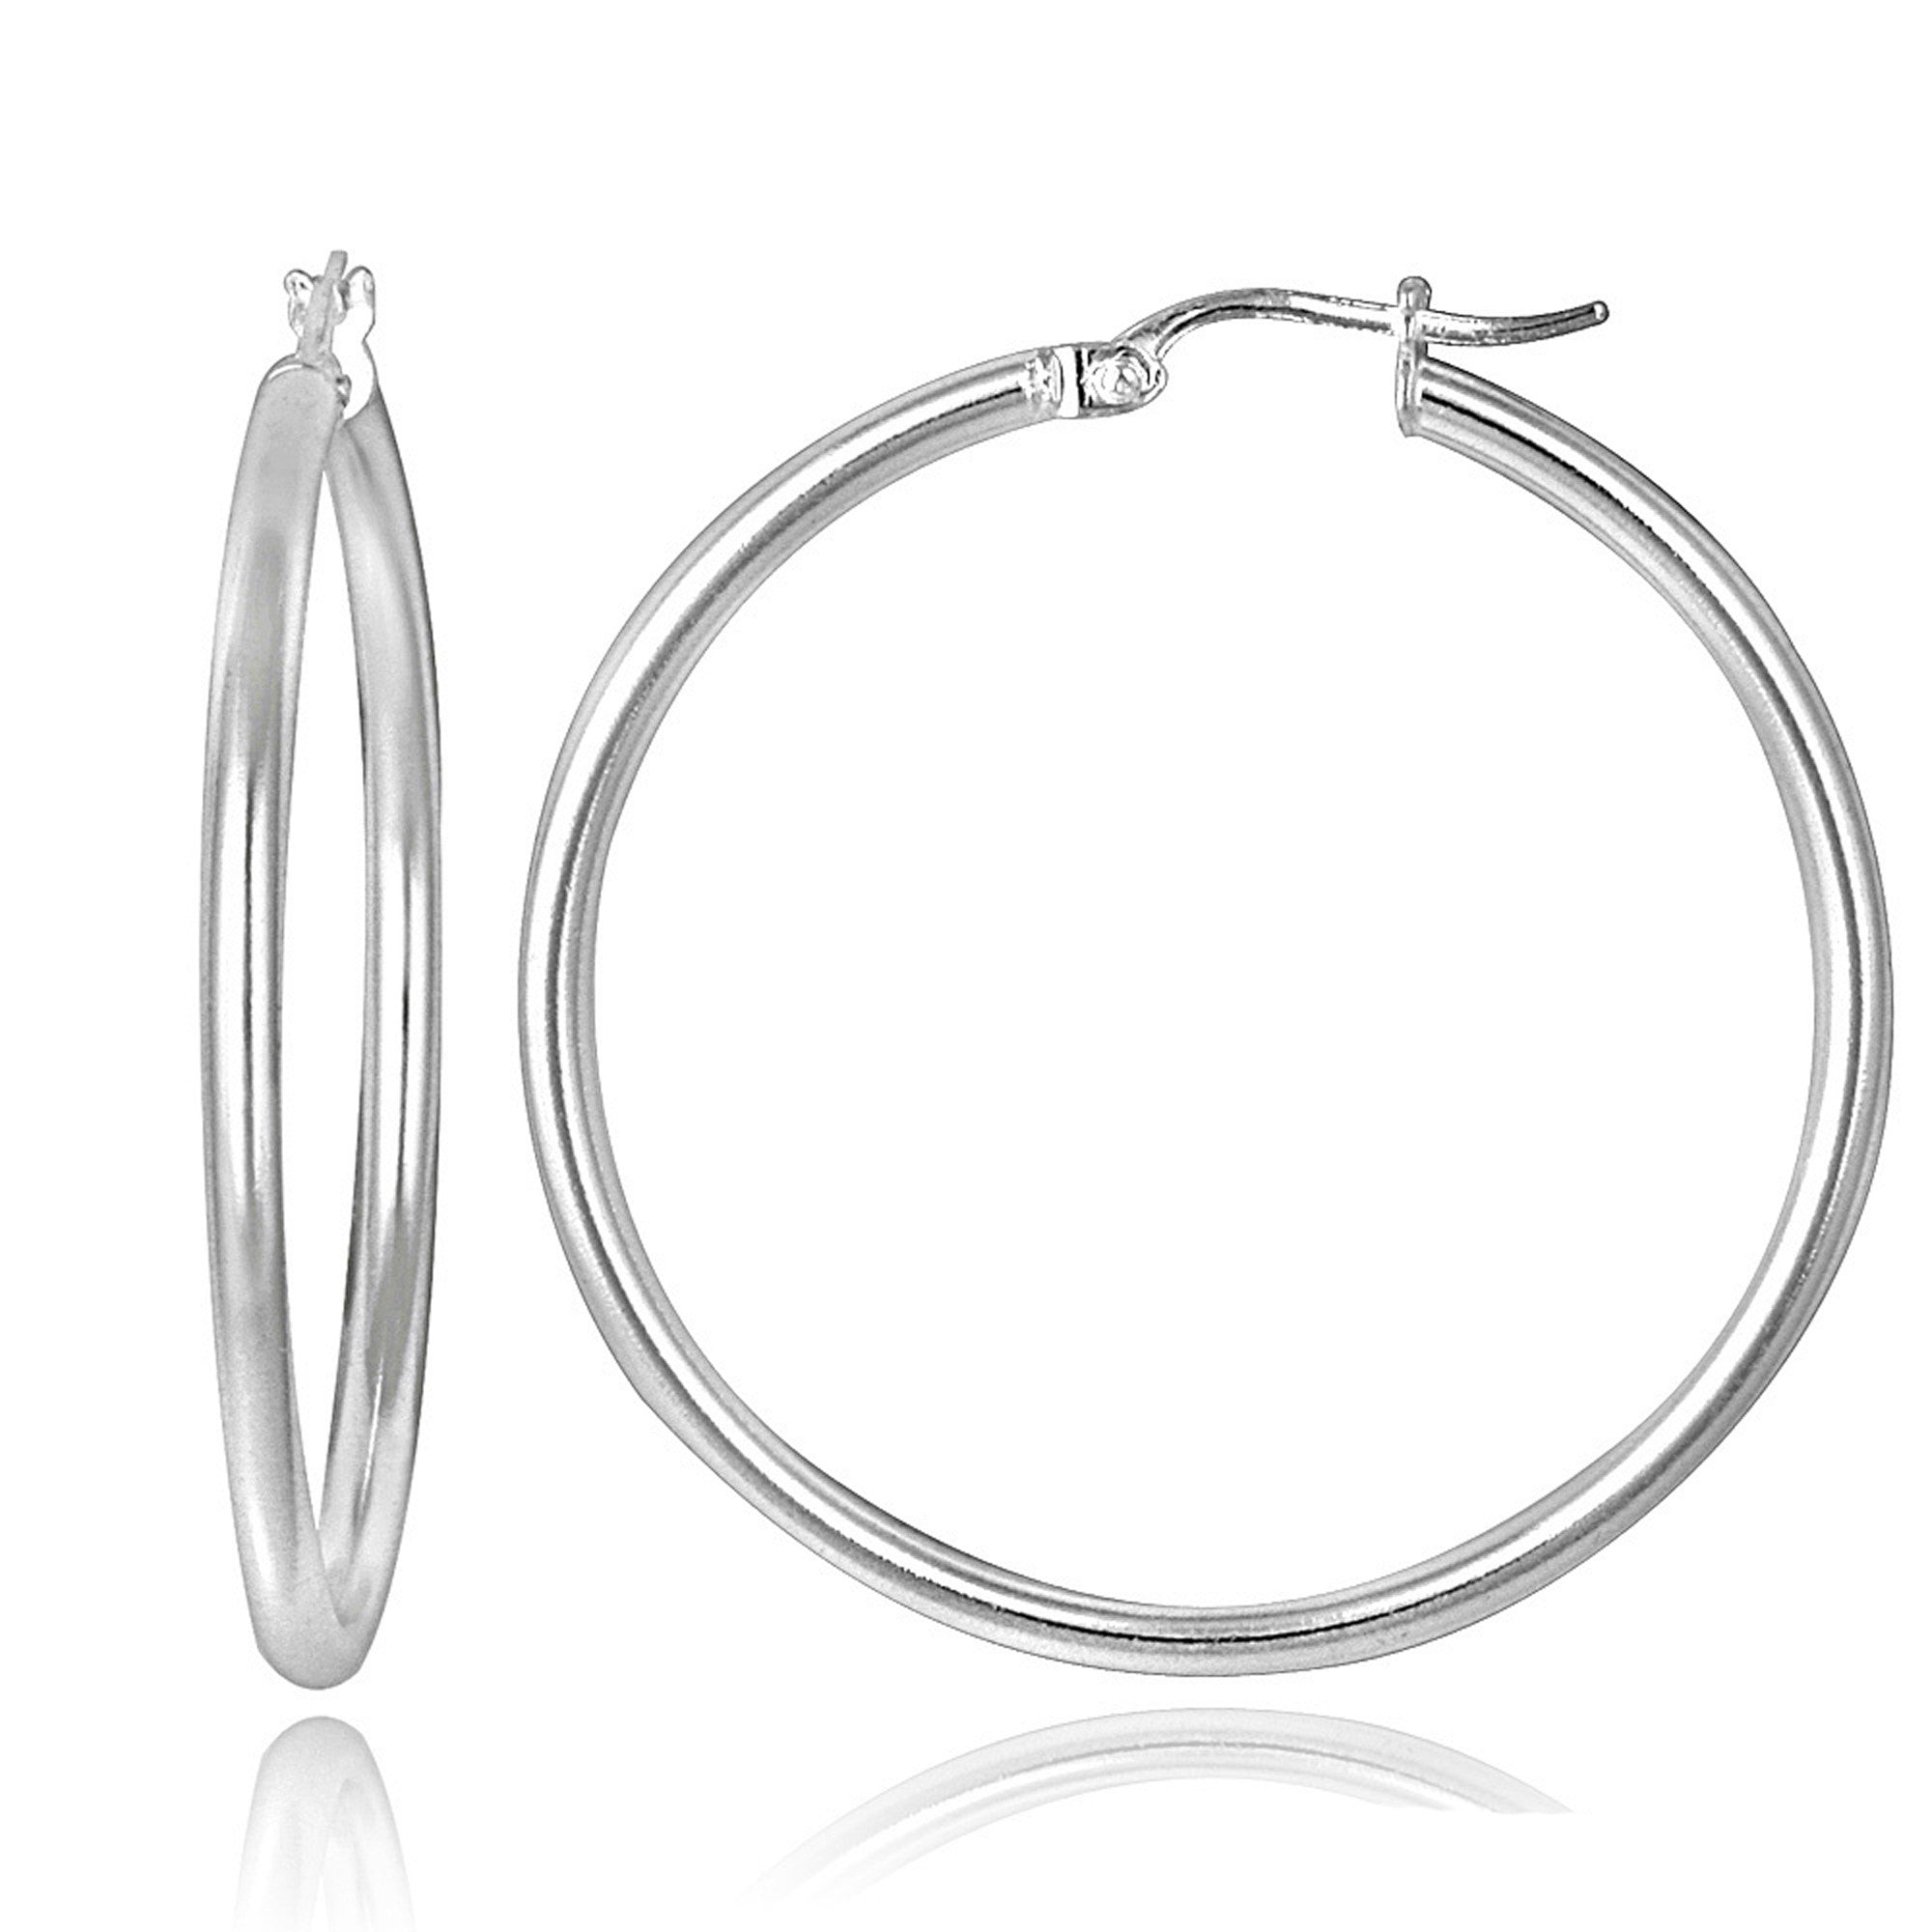 Polished Sterling Silver 30mm Round Saddleback Hoop Earrings